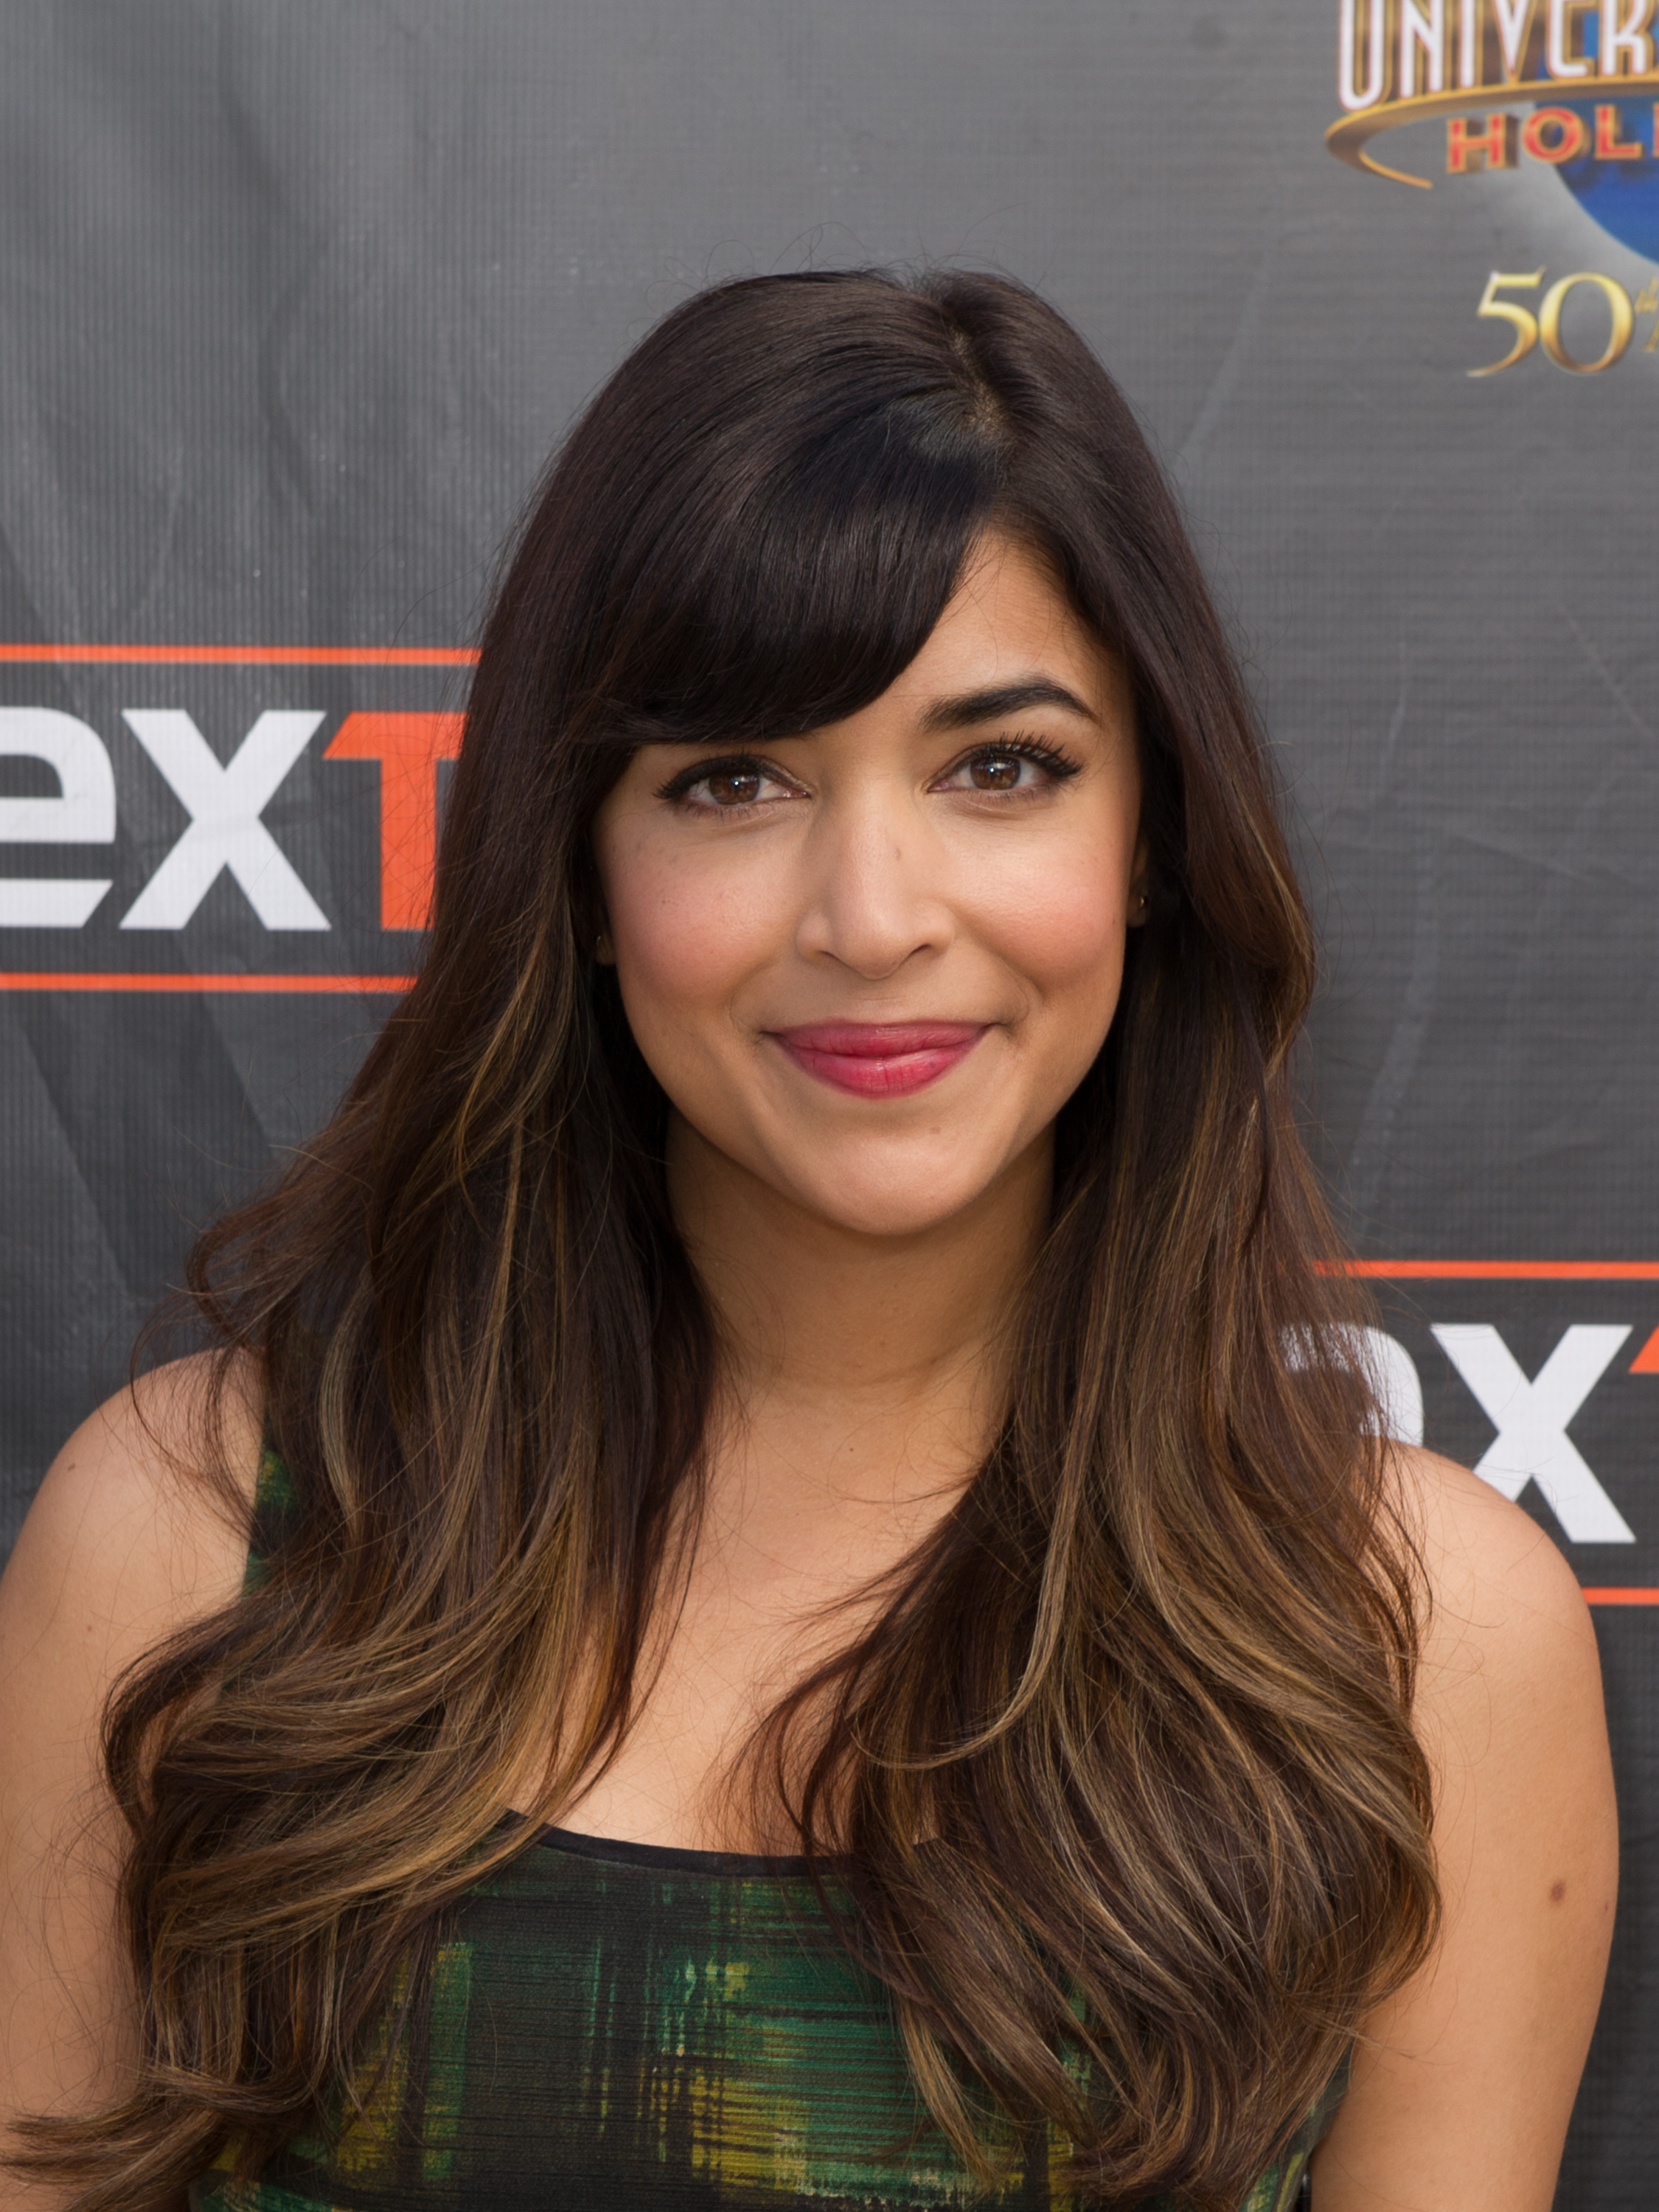 Incredible 100 Hairstyles With Bangs You39Ll Want To Copy Celebrity Haircuts Short Hairstyles Gunalazisus